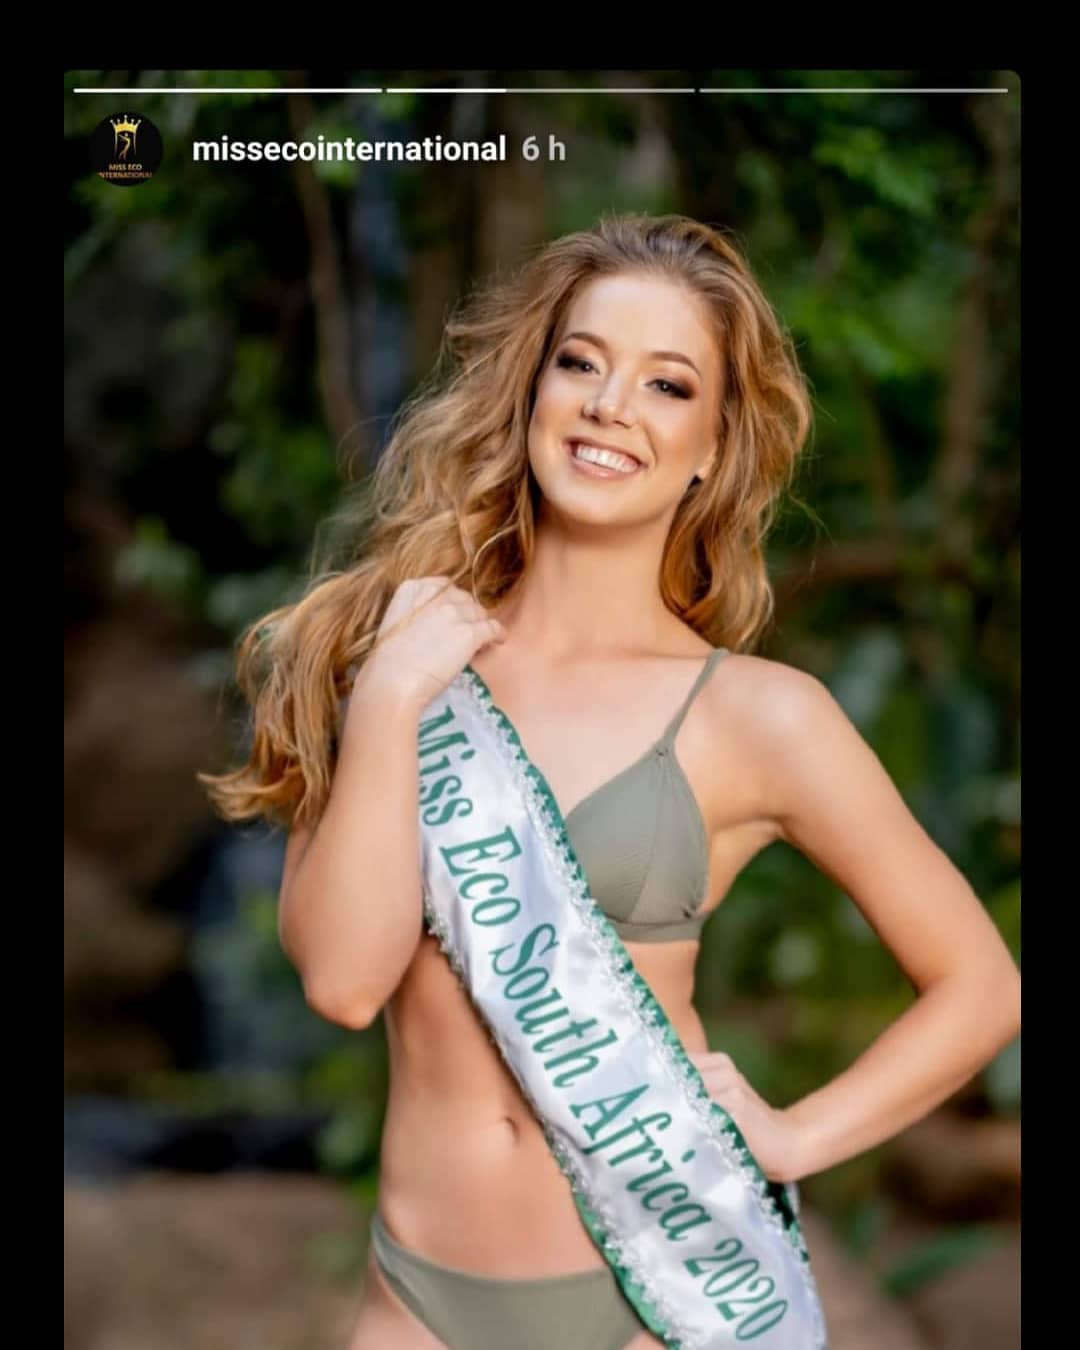 gizzelle uys, miss eco international 2021. Ql3hes10